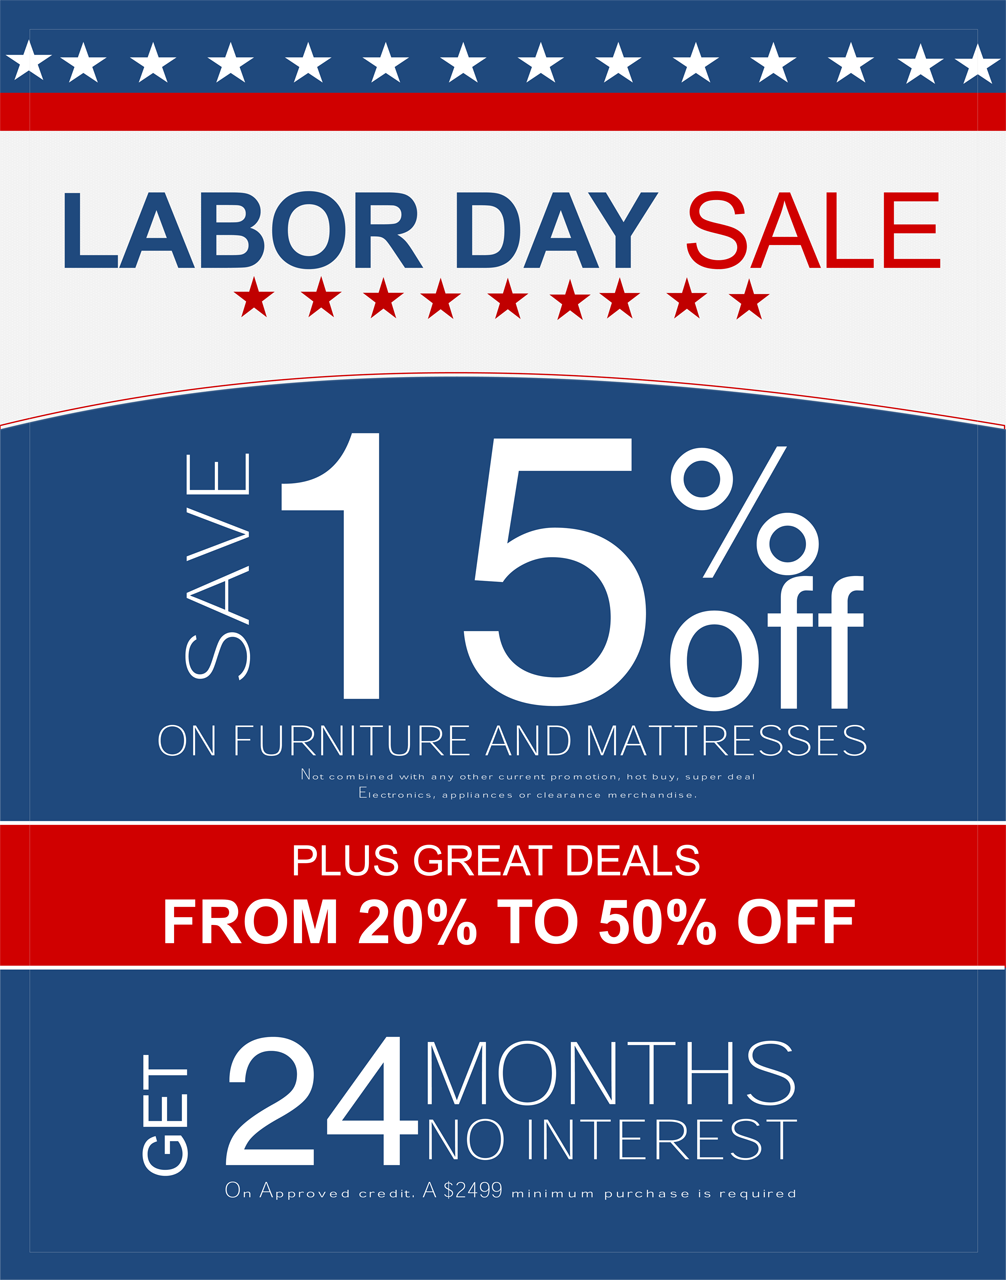 Labor Day Furniture Sales Ads For Mor Furniture In San Diego Ca Labor Day Furniture Sales